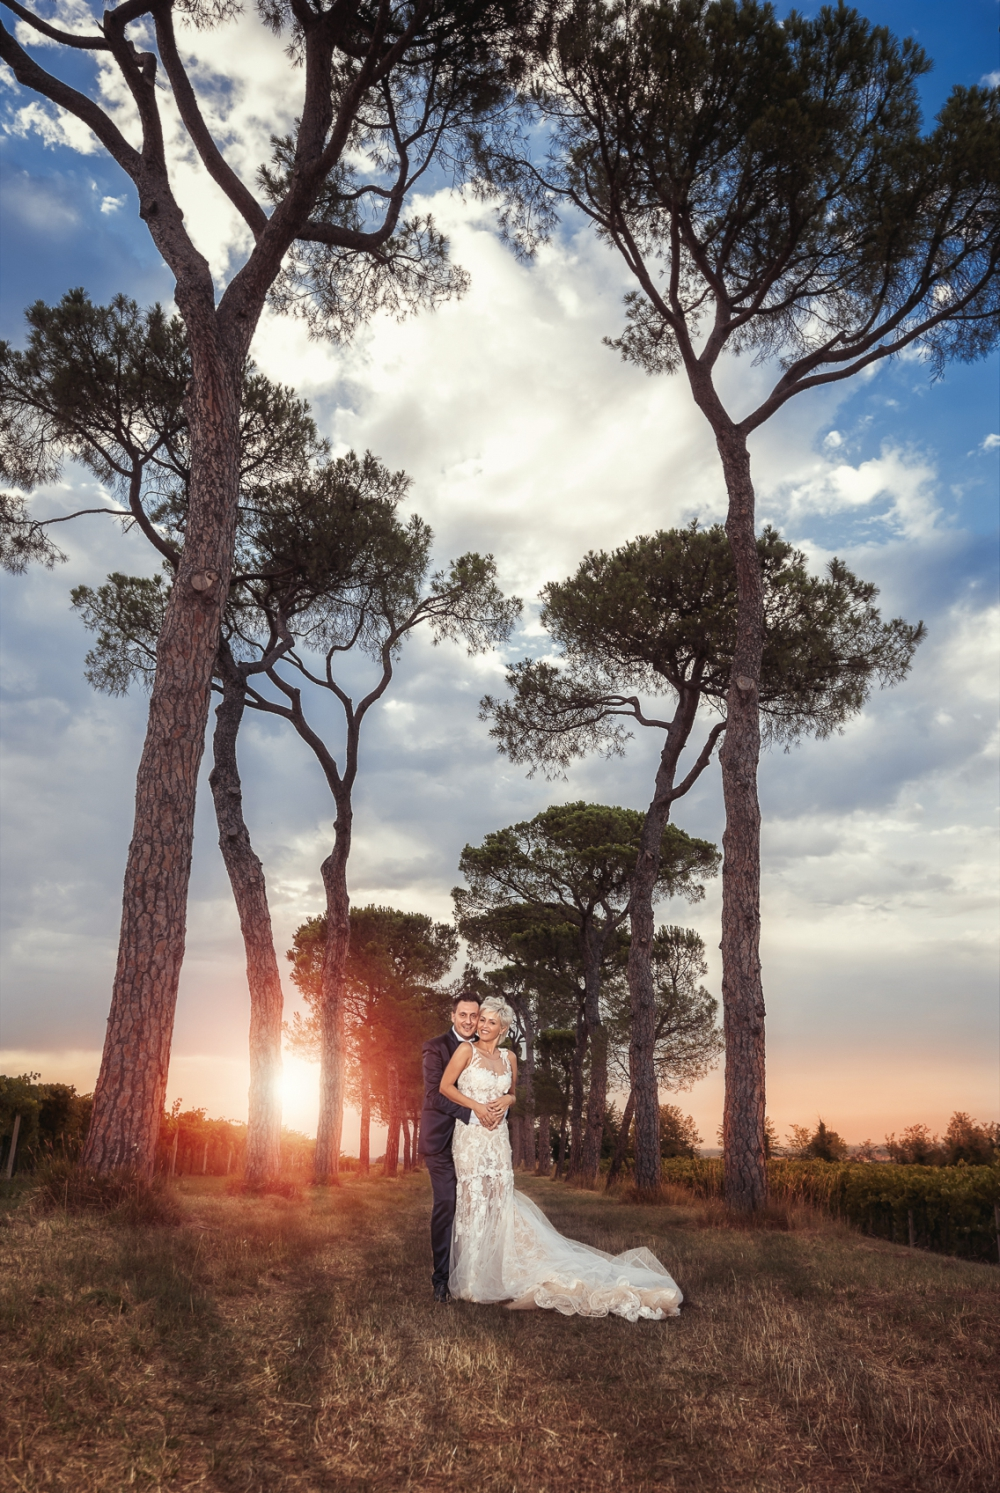 tagg-photography-wedding-miky-charlie-21